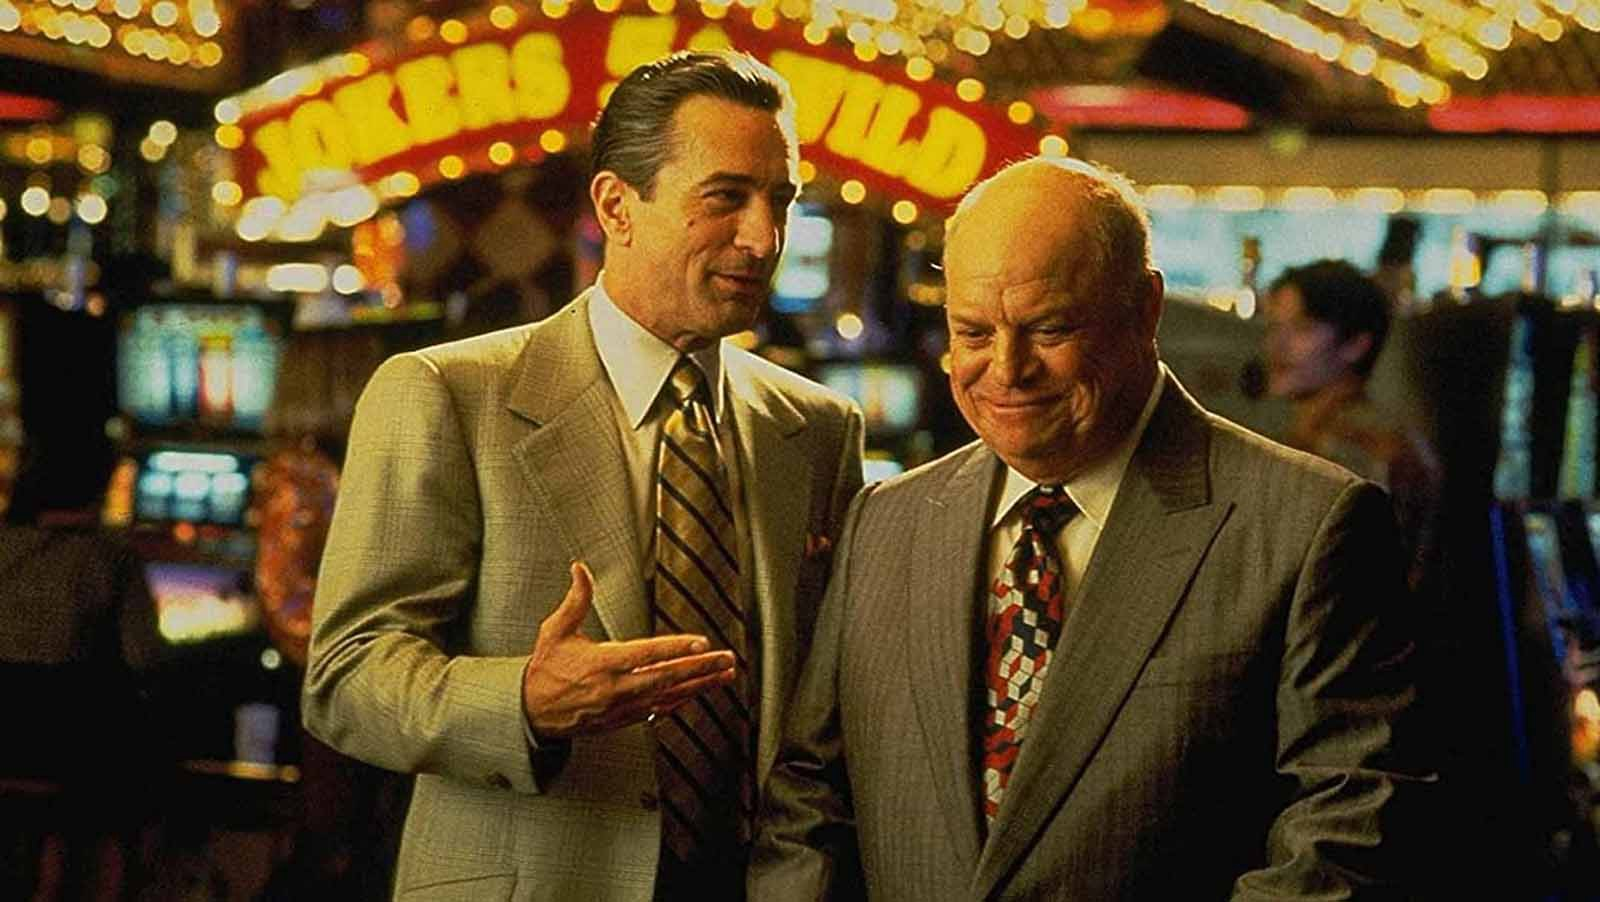 A photo of actors Robert DeNiro and comedian Don Rickles from Martin Scorcese's movie 'Casino'